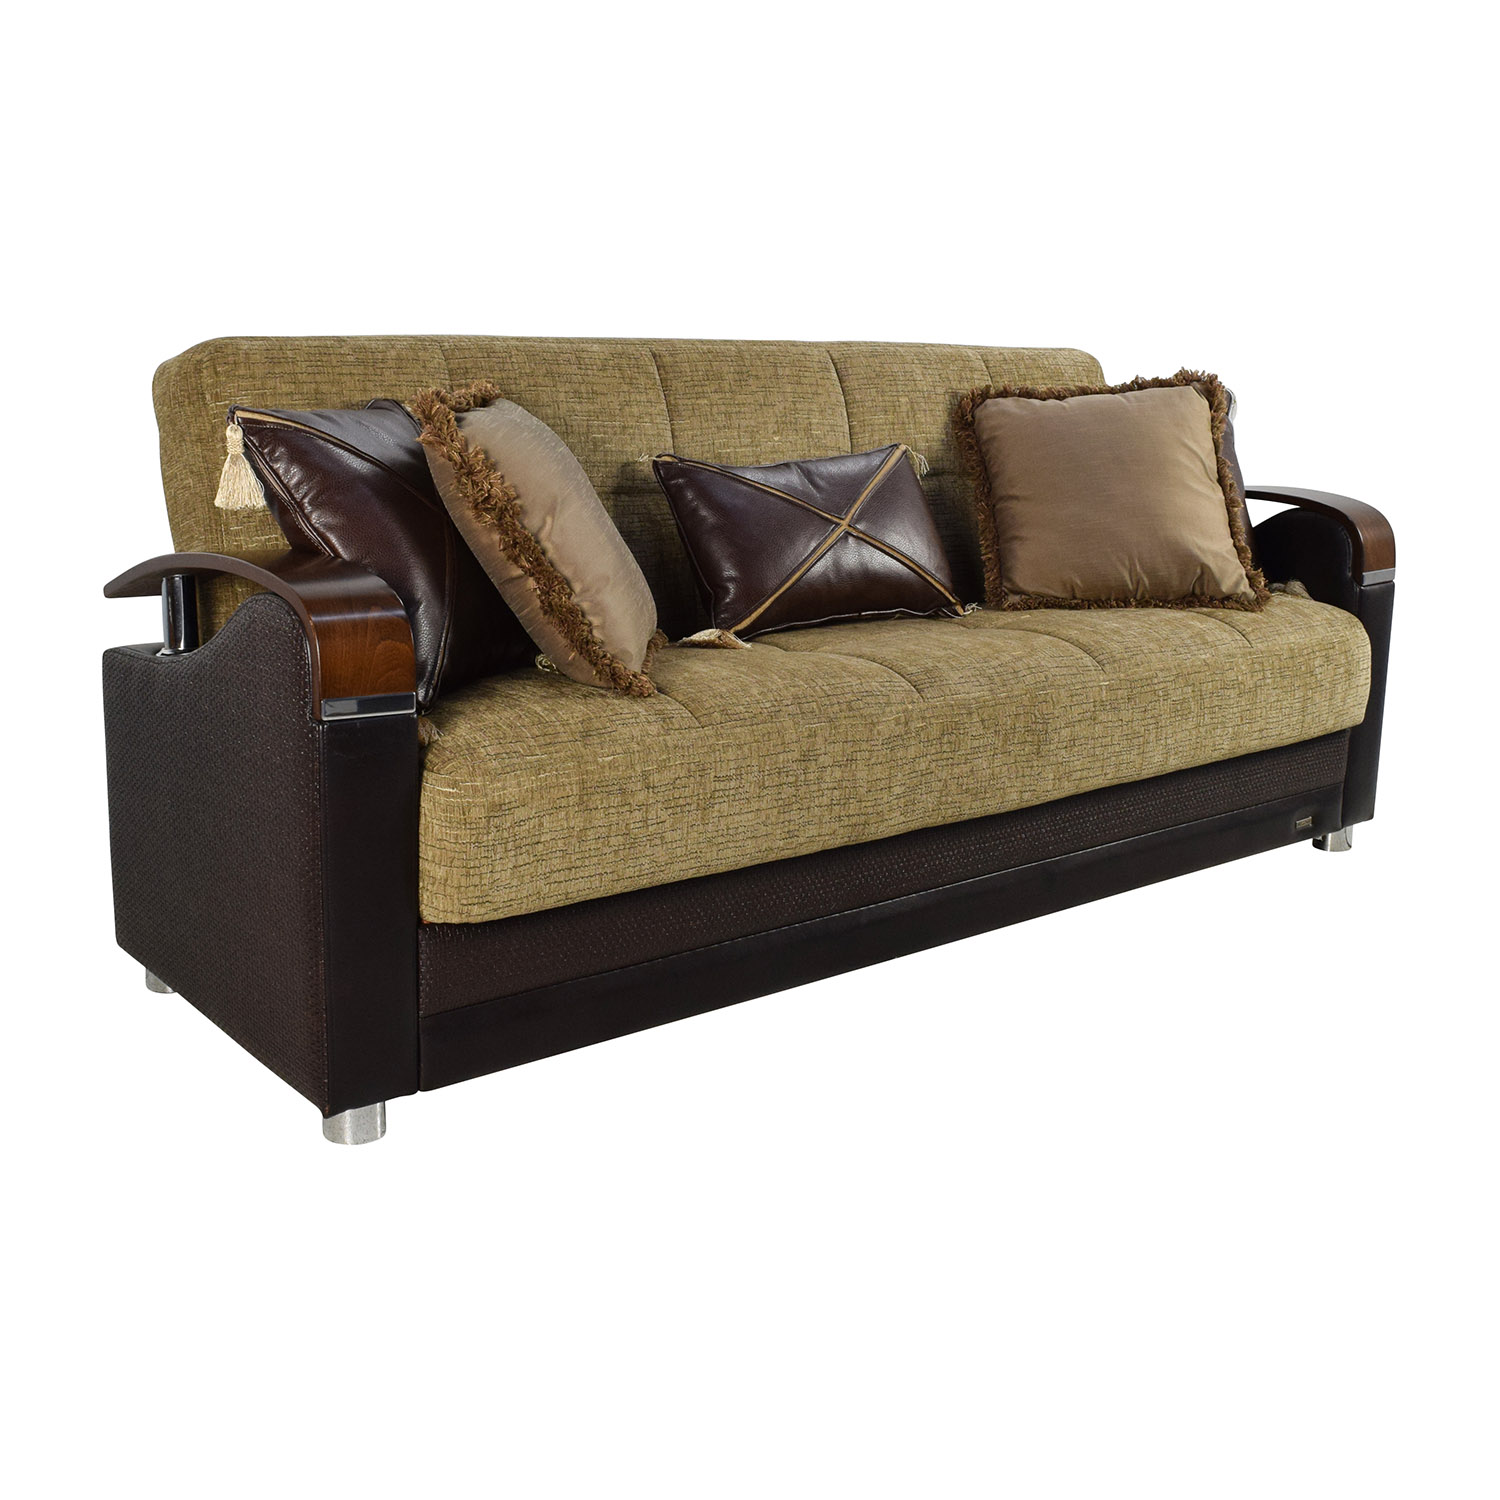 Bellona Bellona Luna Gold and Brown Sofa Sleeper with Pillows